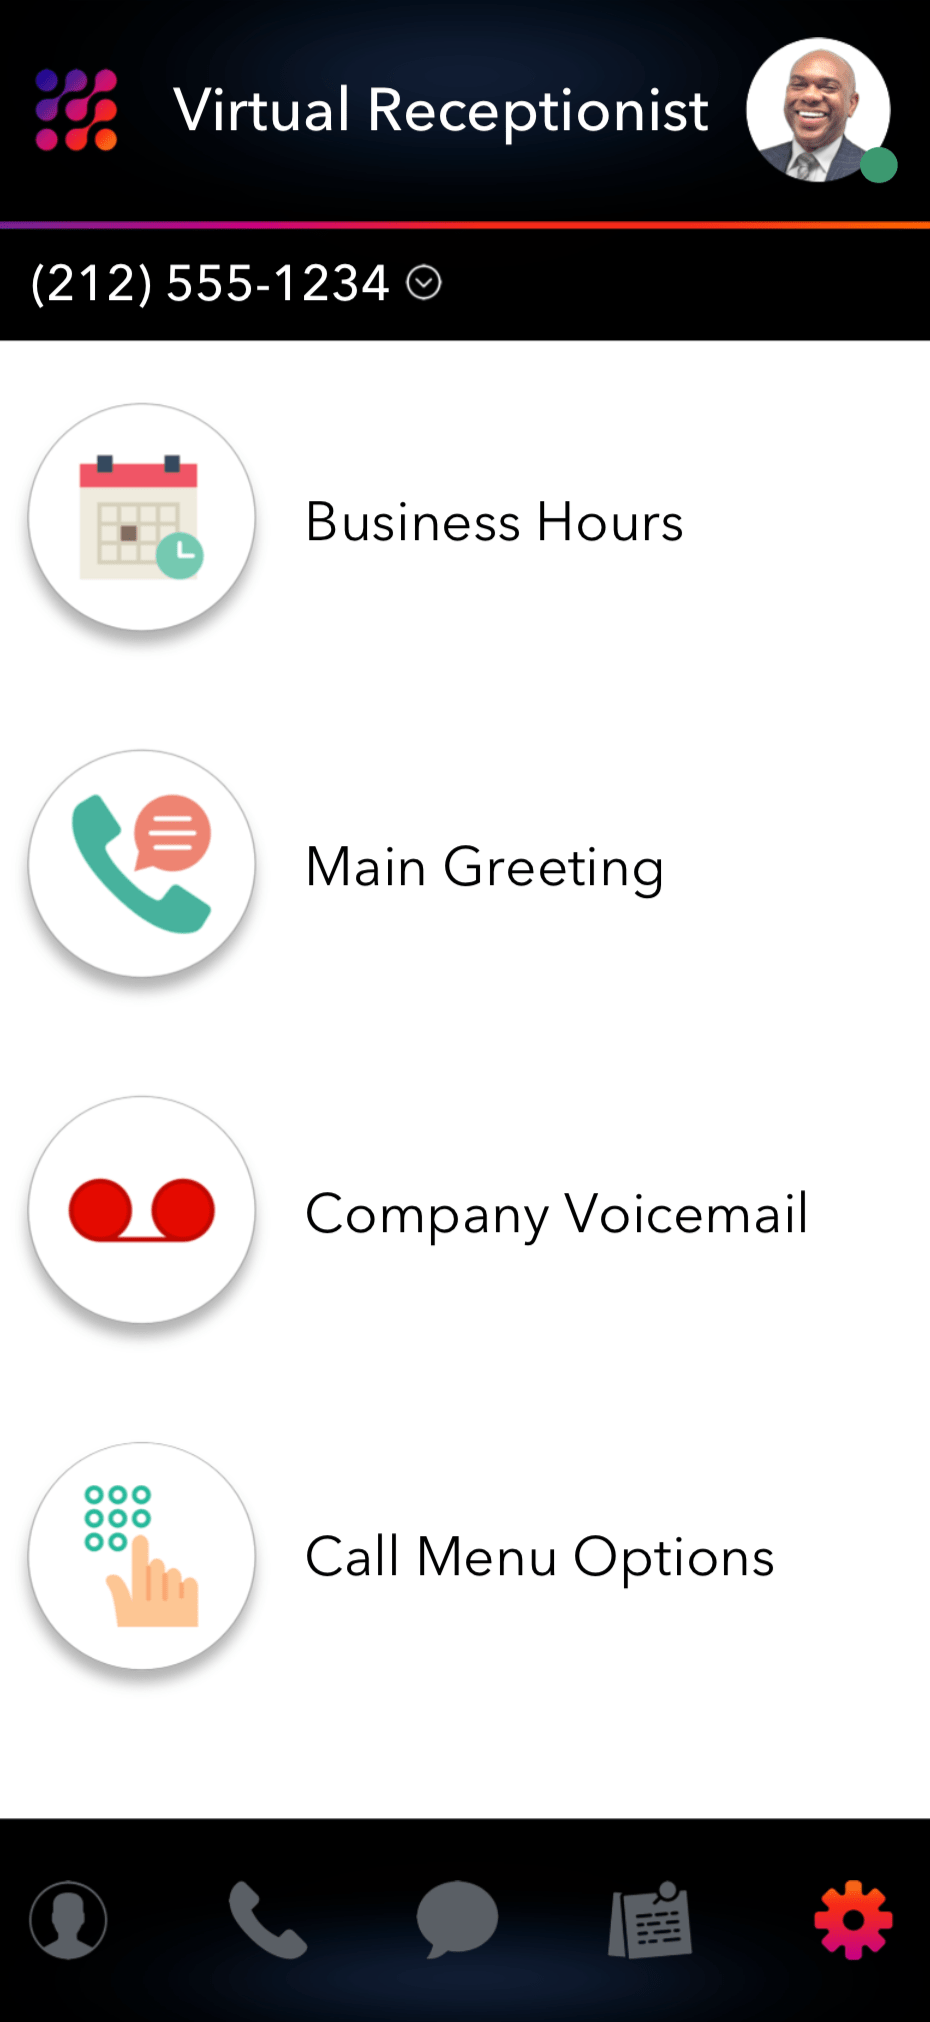 LinkedPhone Mobile App Screenshot of Business Hours Welcome Greeting and Voicemail